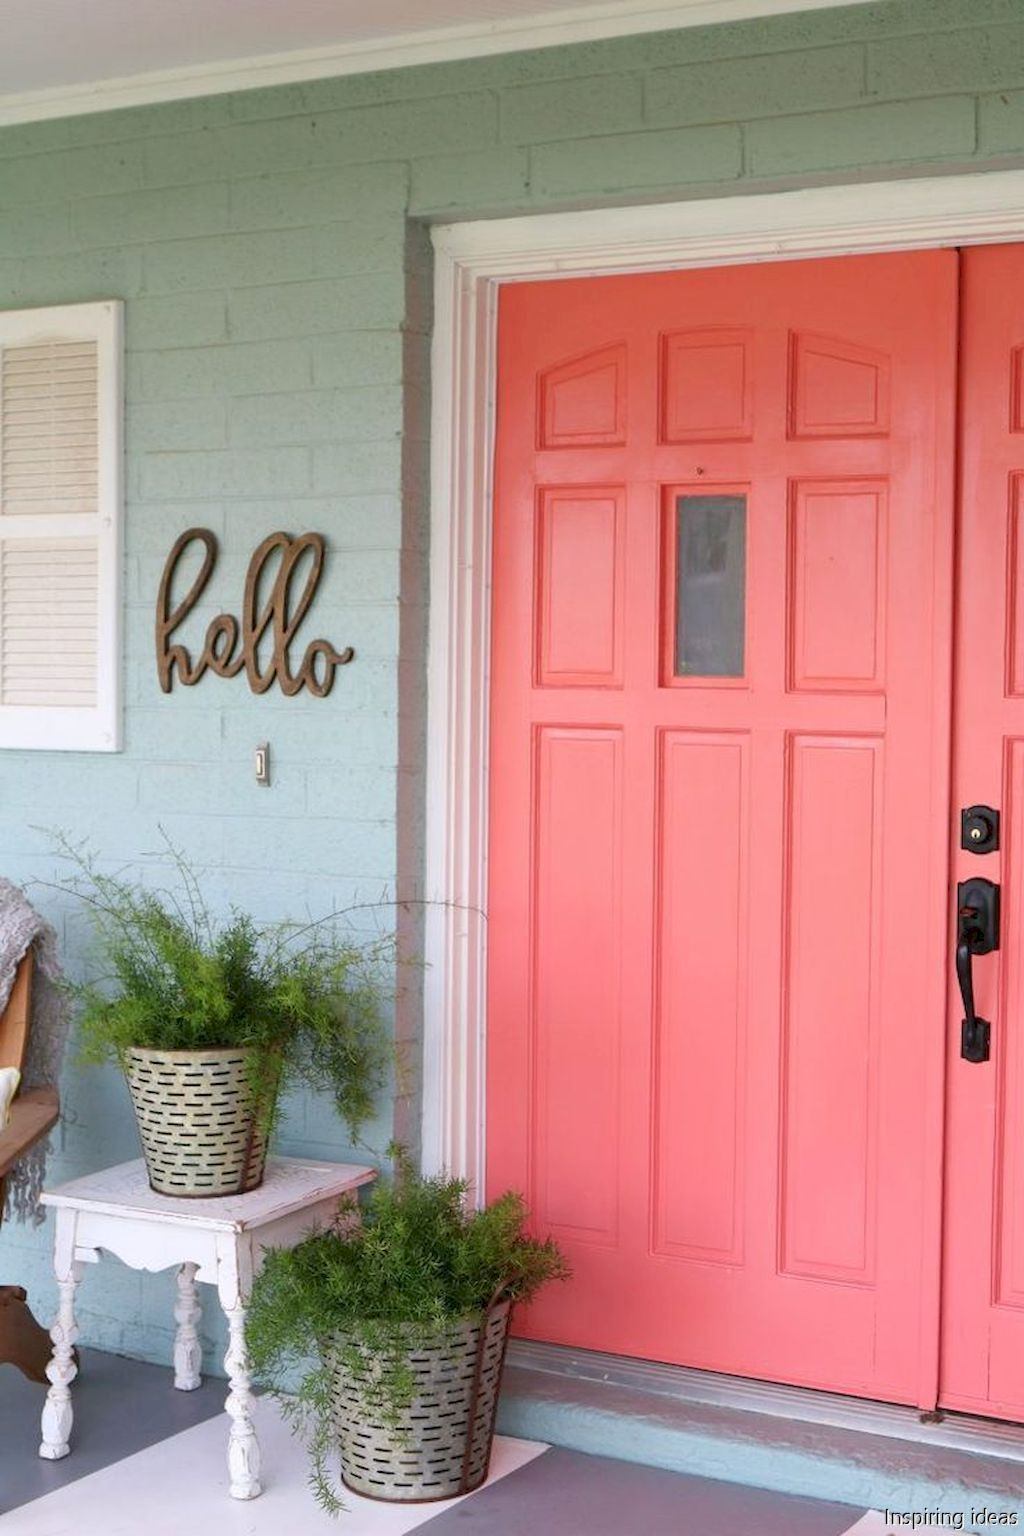 85+ Eye Catching Curb Appeal Ideas | Curb appeal, Exterior colors ...